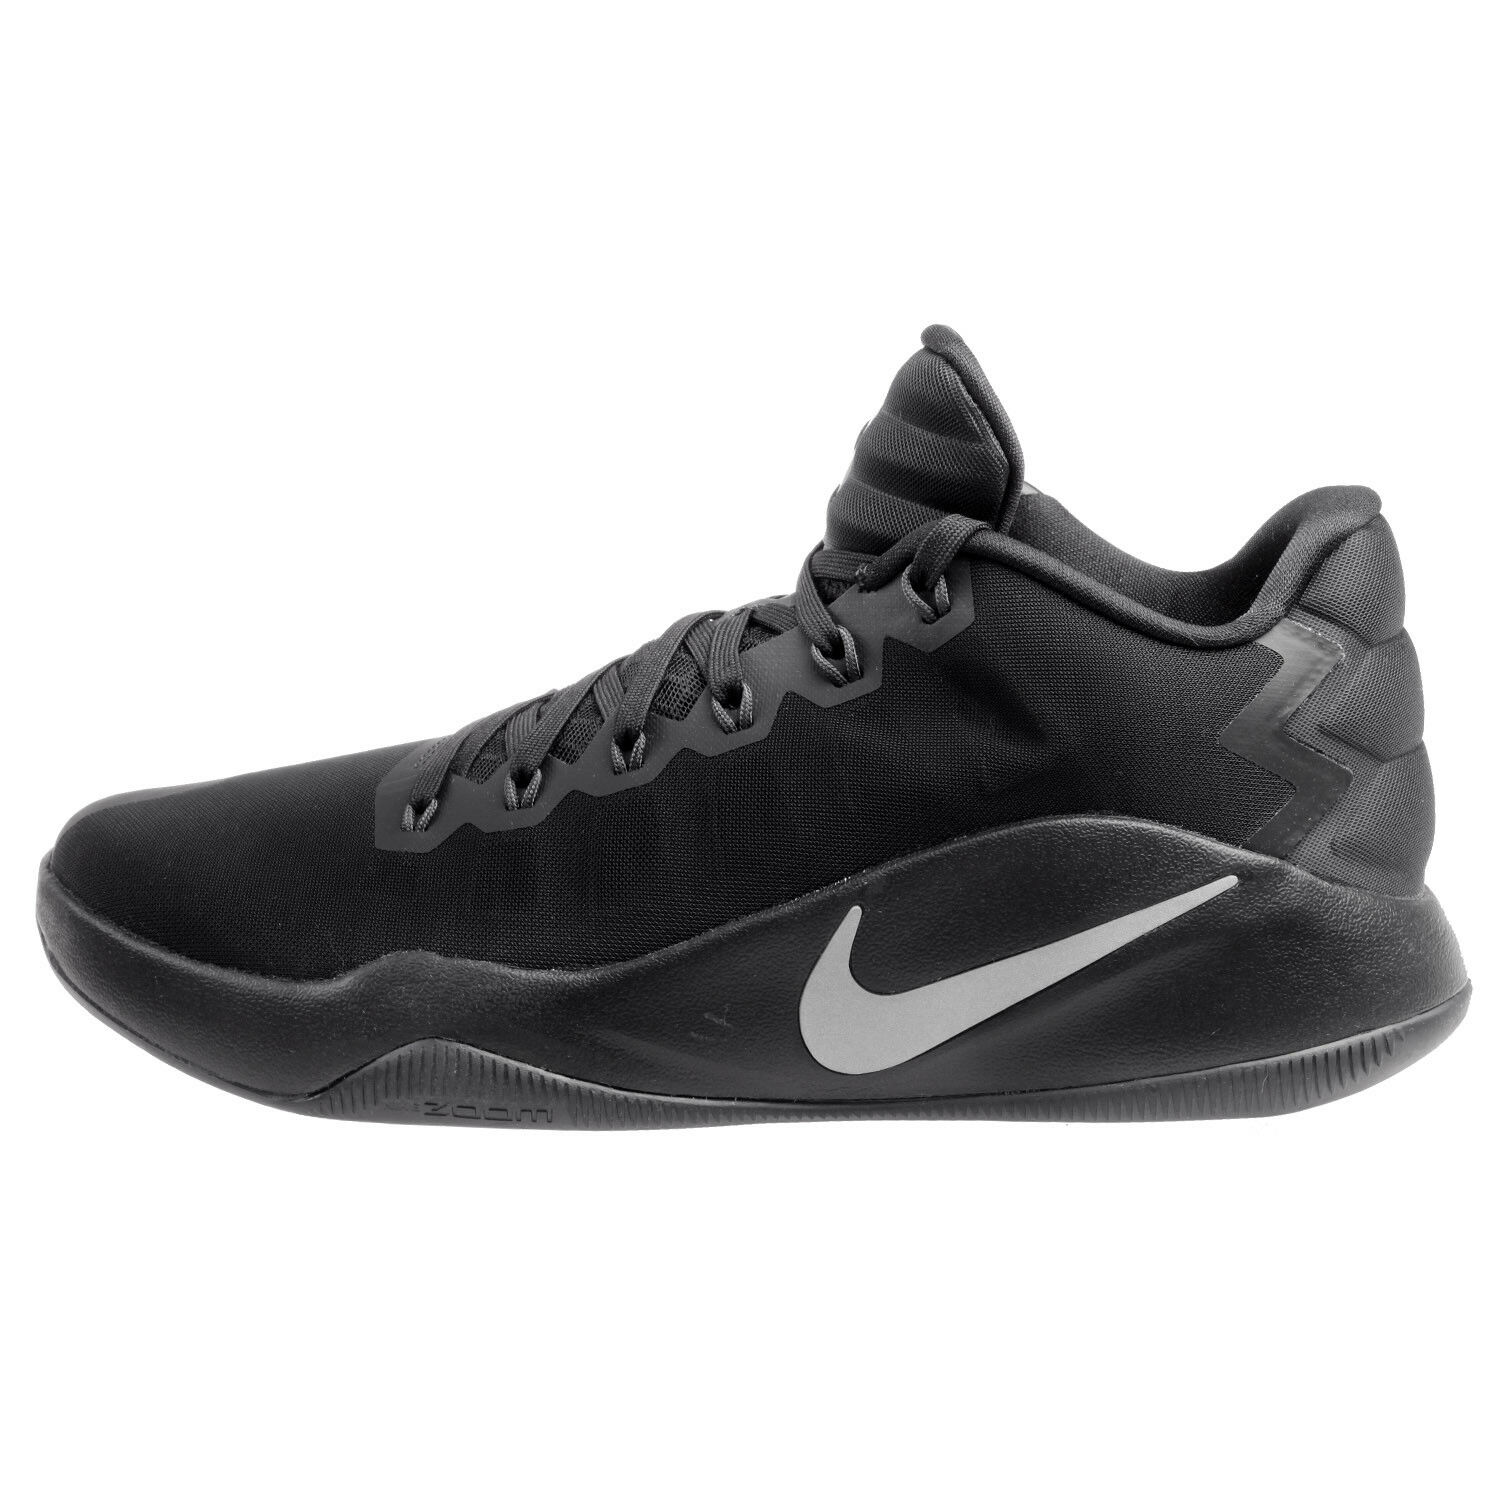 Nike hyperdunk 2018 Low Basketball Hombre 844363-002 Negro Plata Basketball Low Zapatos Tamaño 12 6d1a1a